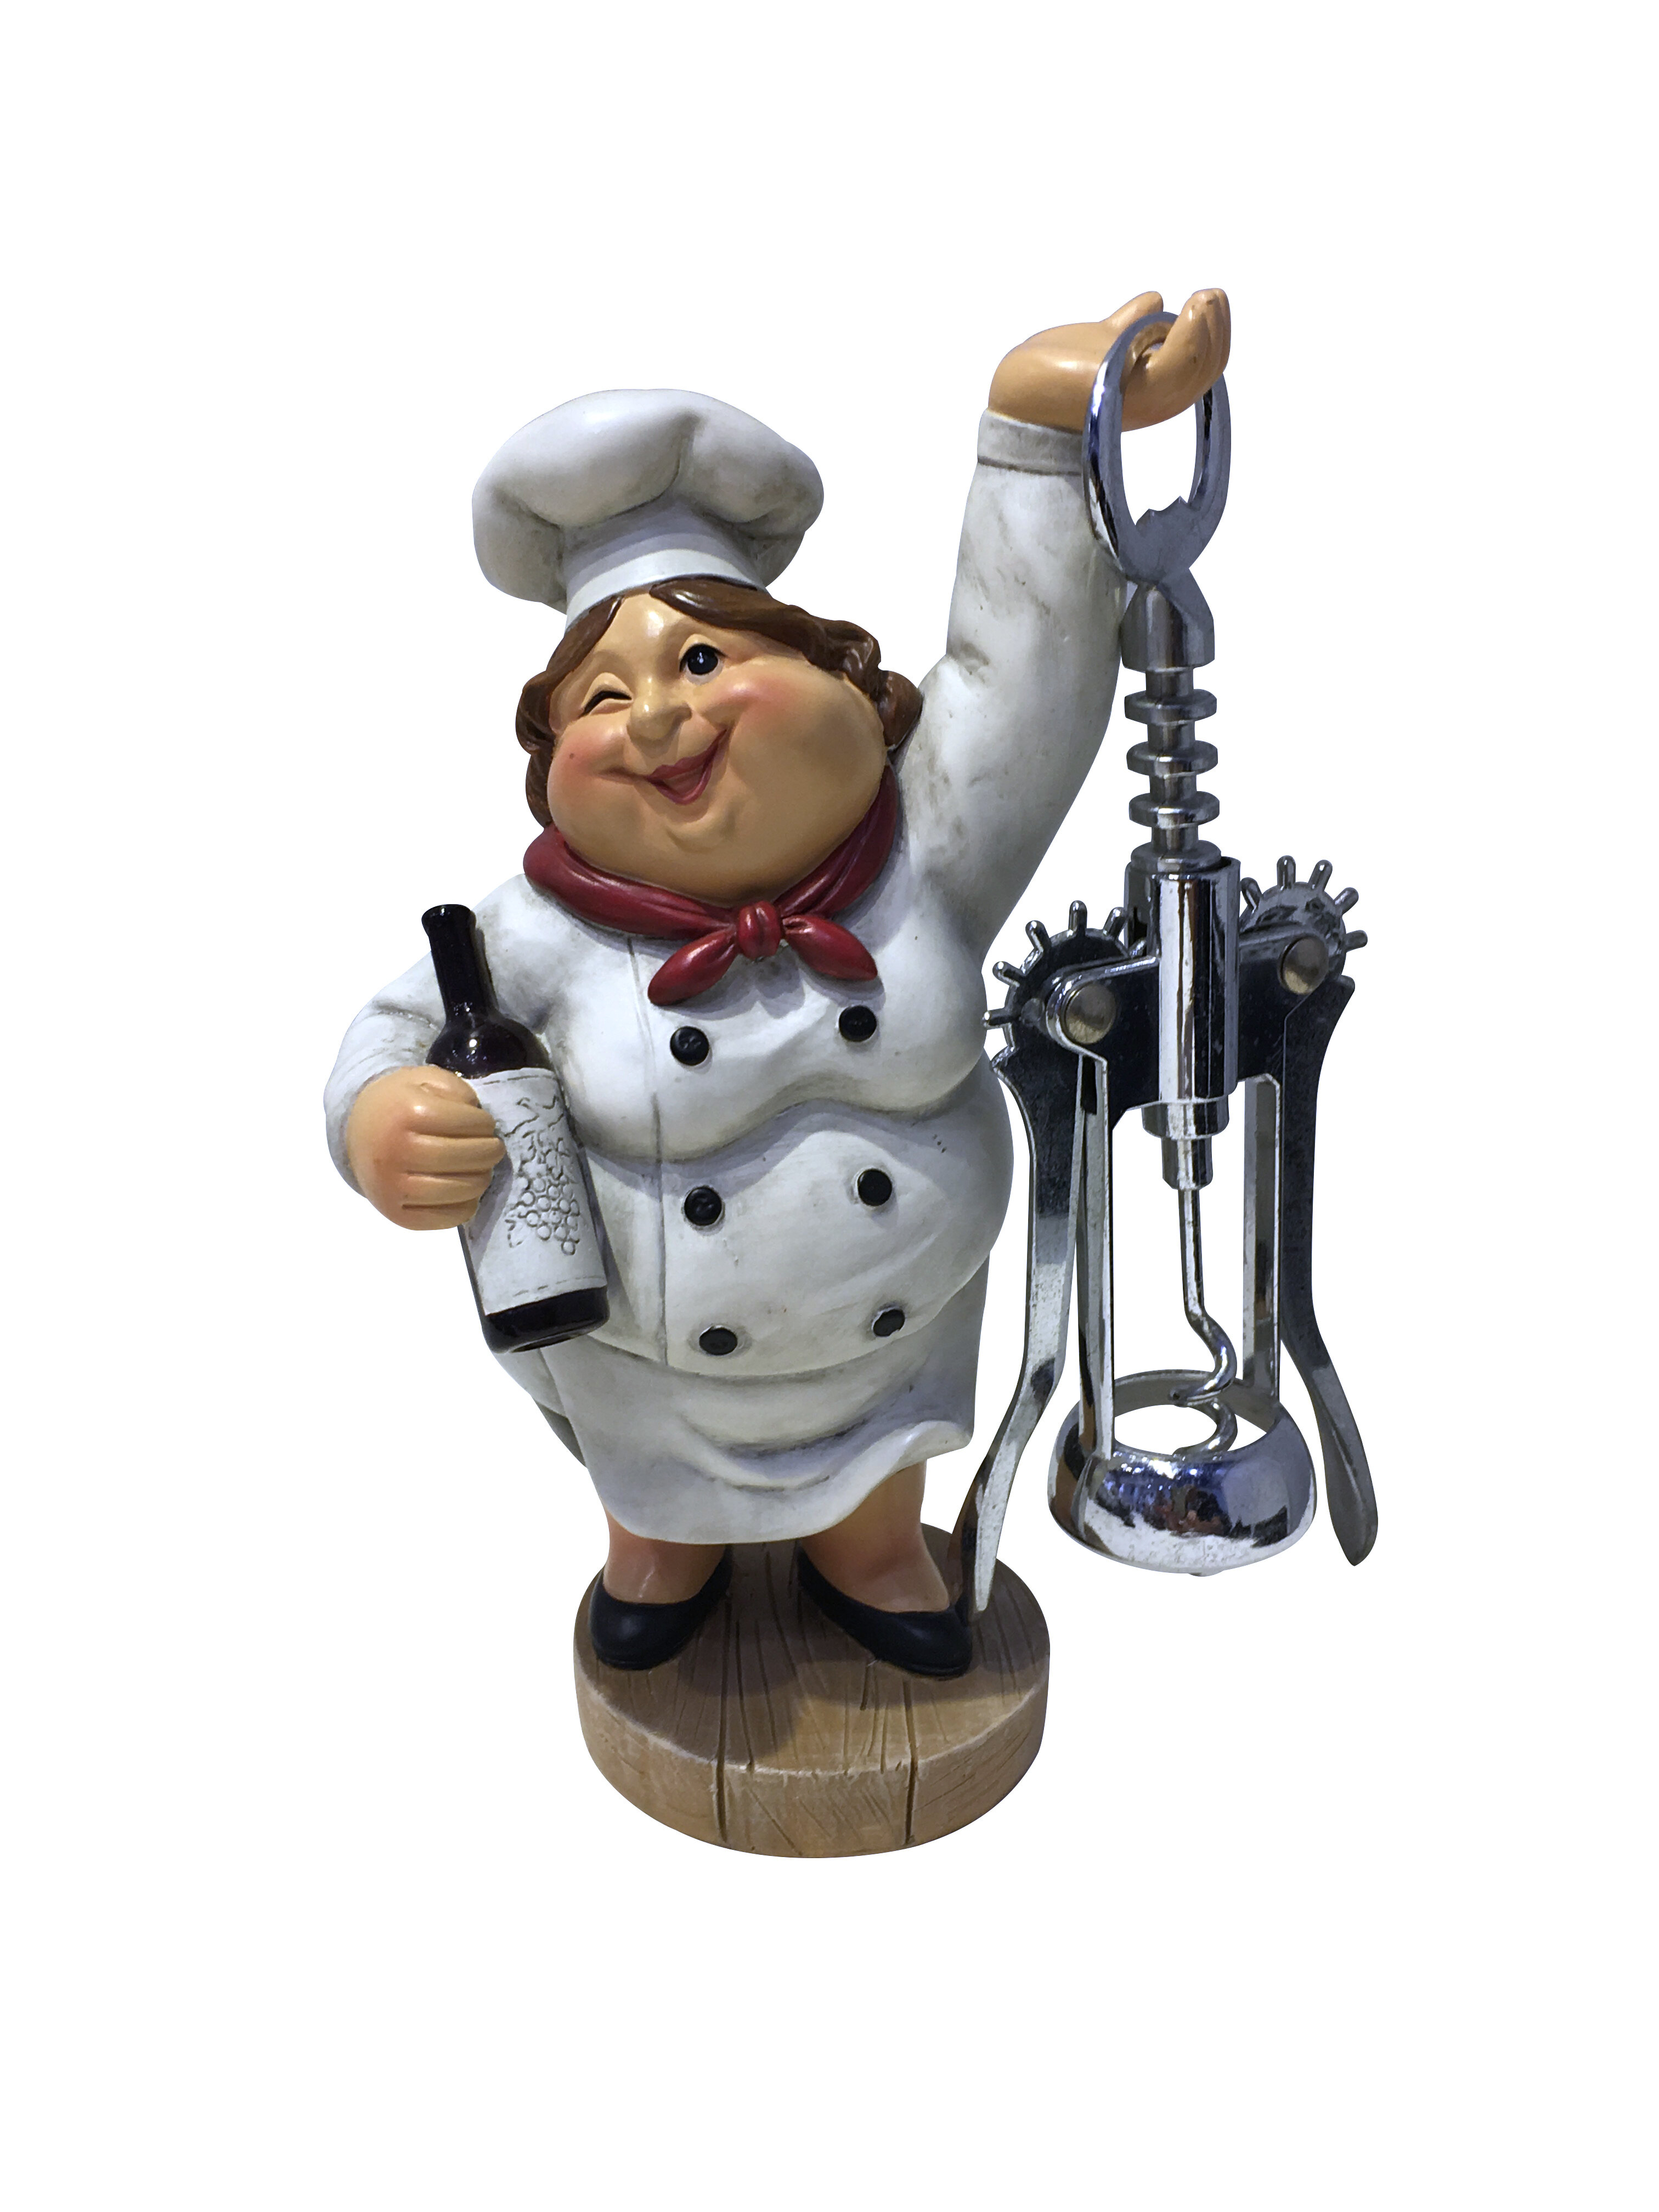 Wine Bodies Winking Fat Lady Italian Chef Figurine Corkscrew Reviews Wayfair